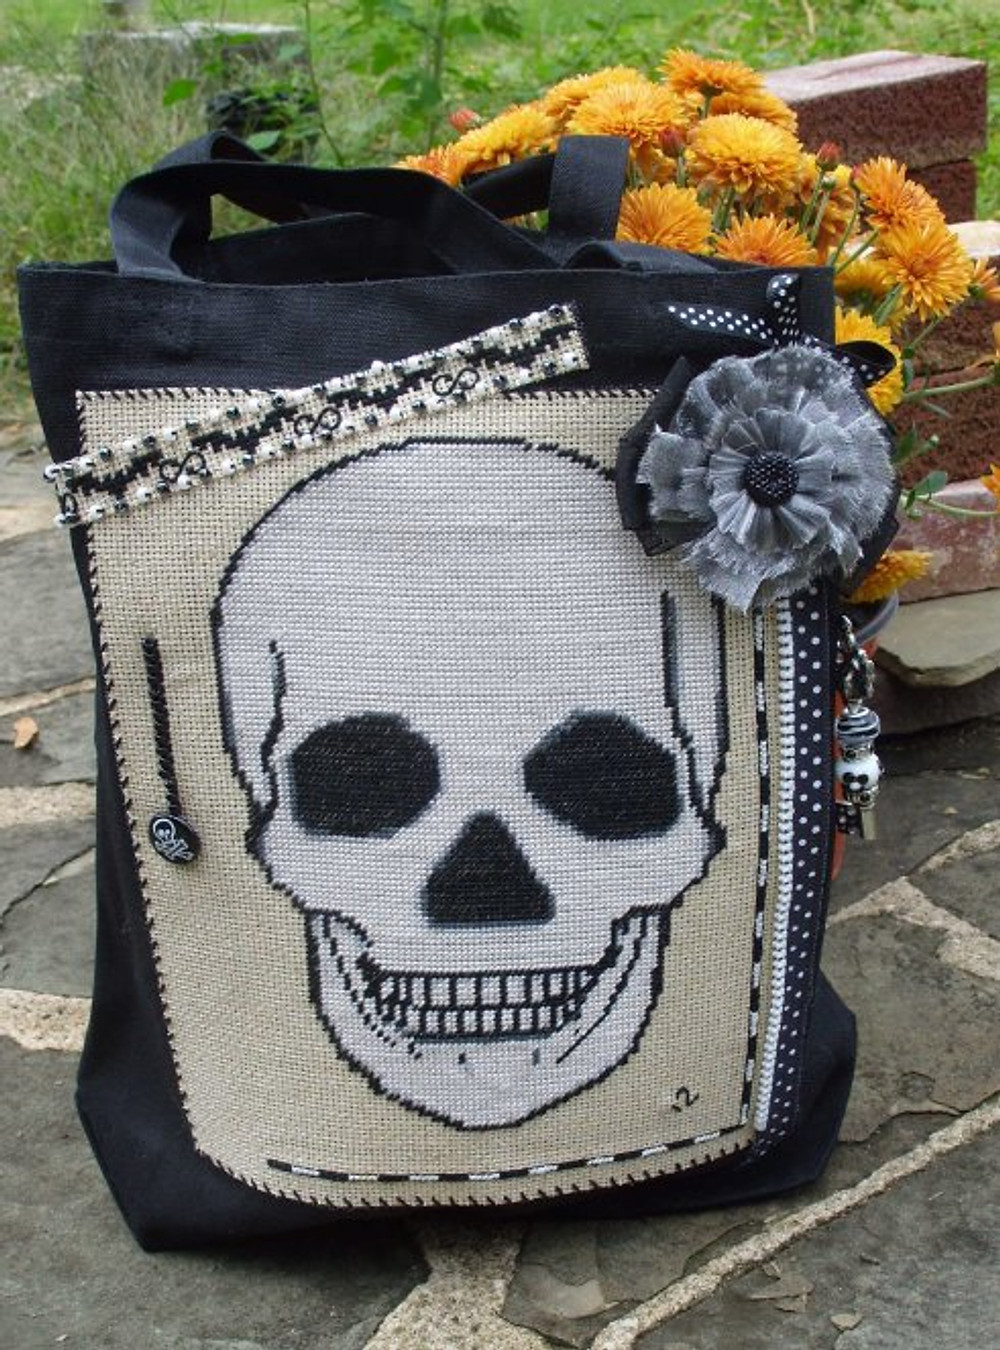 silverravenwolf sugar skull bag